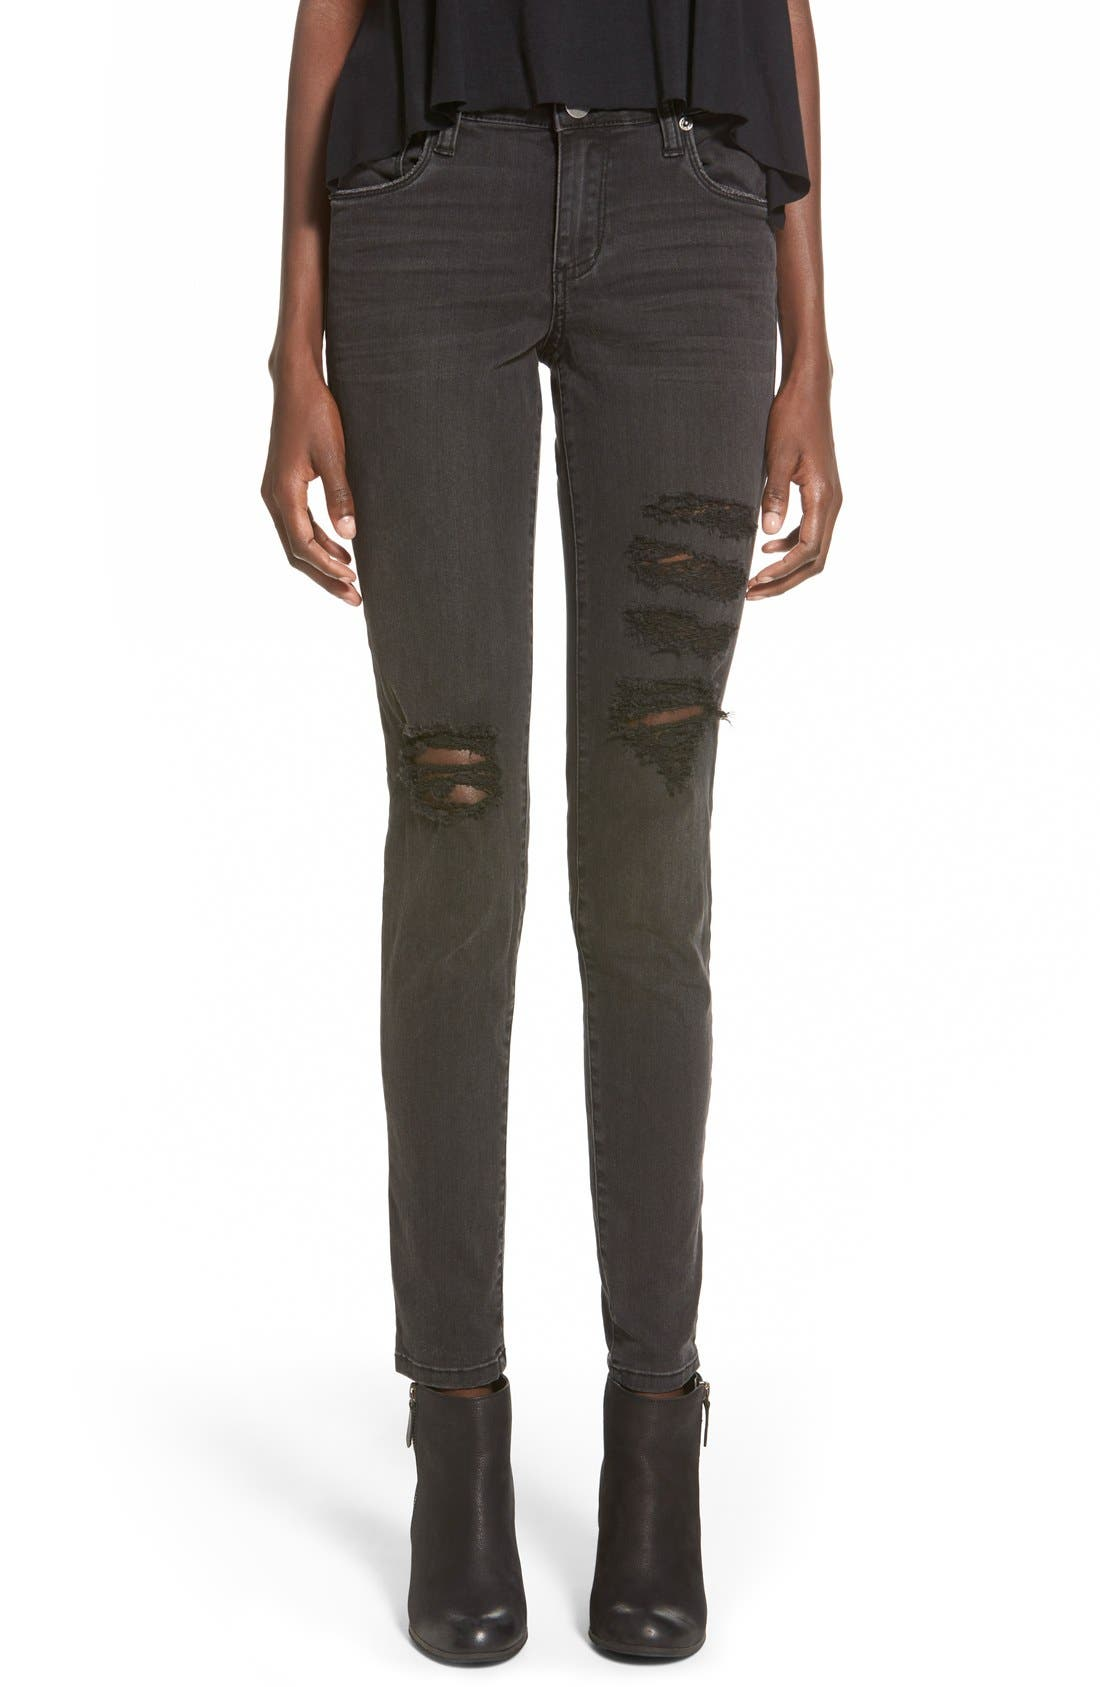 STSBlue 'Piper' Destroyed Skinny Jeans, Main, color, 002